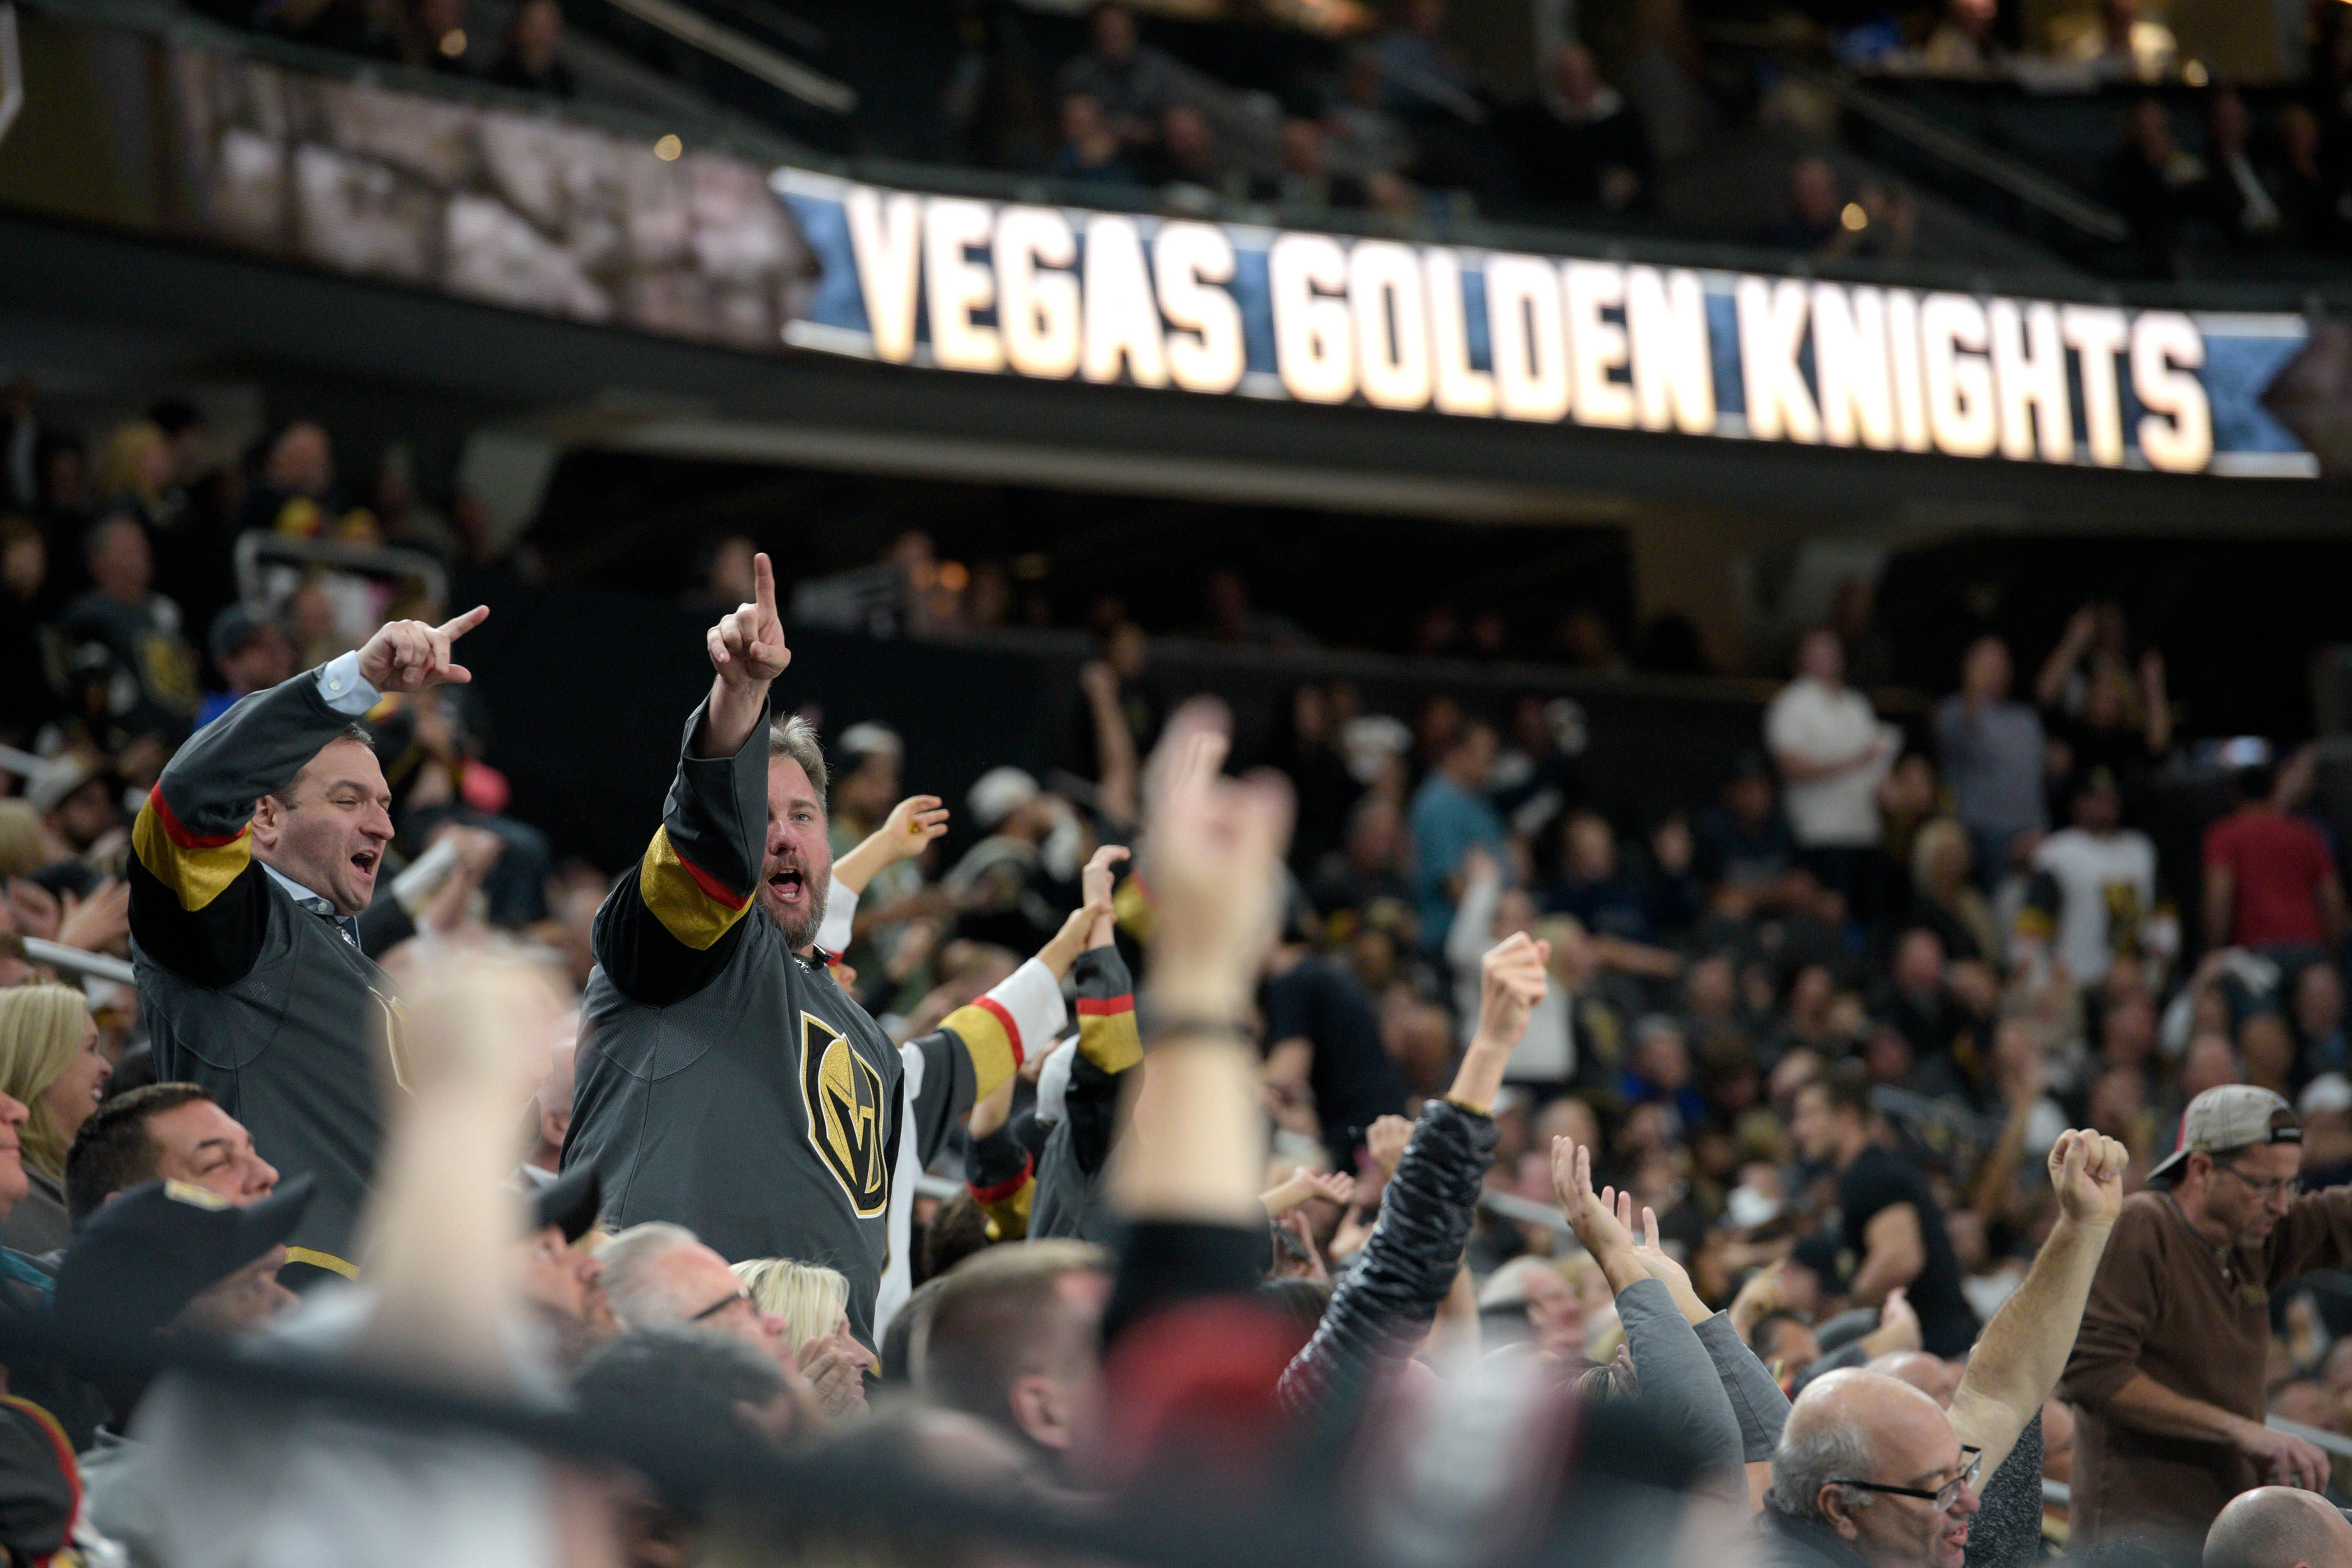 Vegas Golden Knights fans cheer during the Knights home opener Tuesday, Oct. 10, 2017, at the T-Mobile Arena. The Knights won 5-2 to extend their winning streak to 3-0. CREDIT: Sam Morris/Las Vegas News Bureau